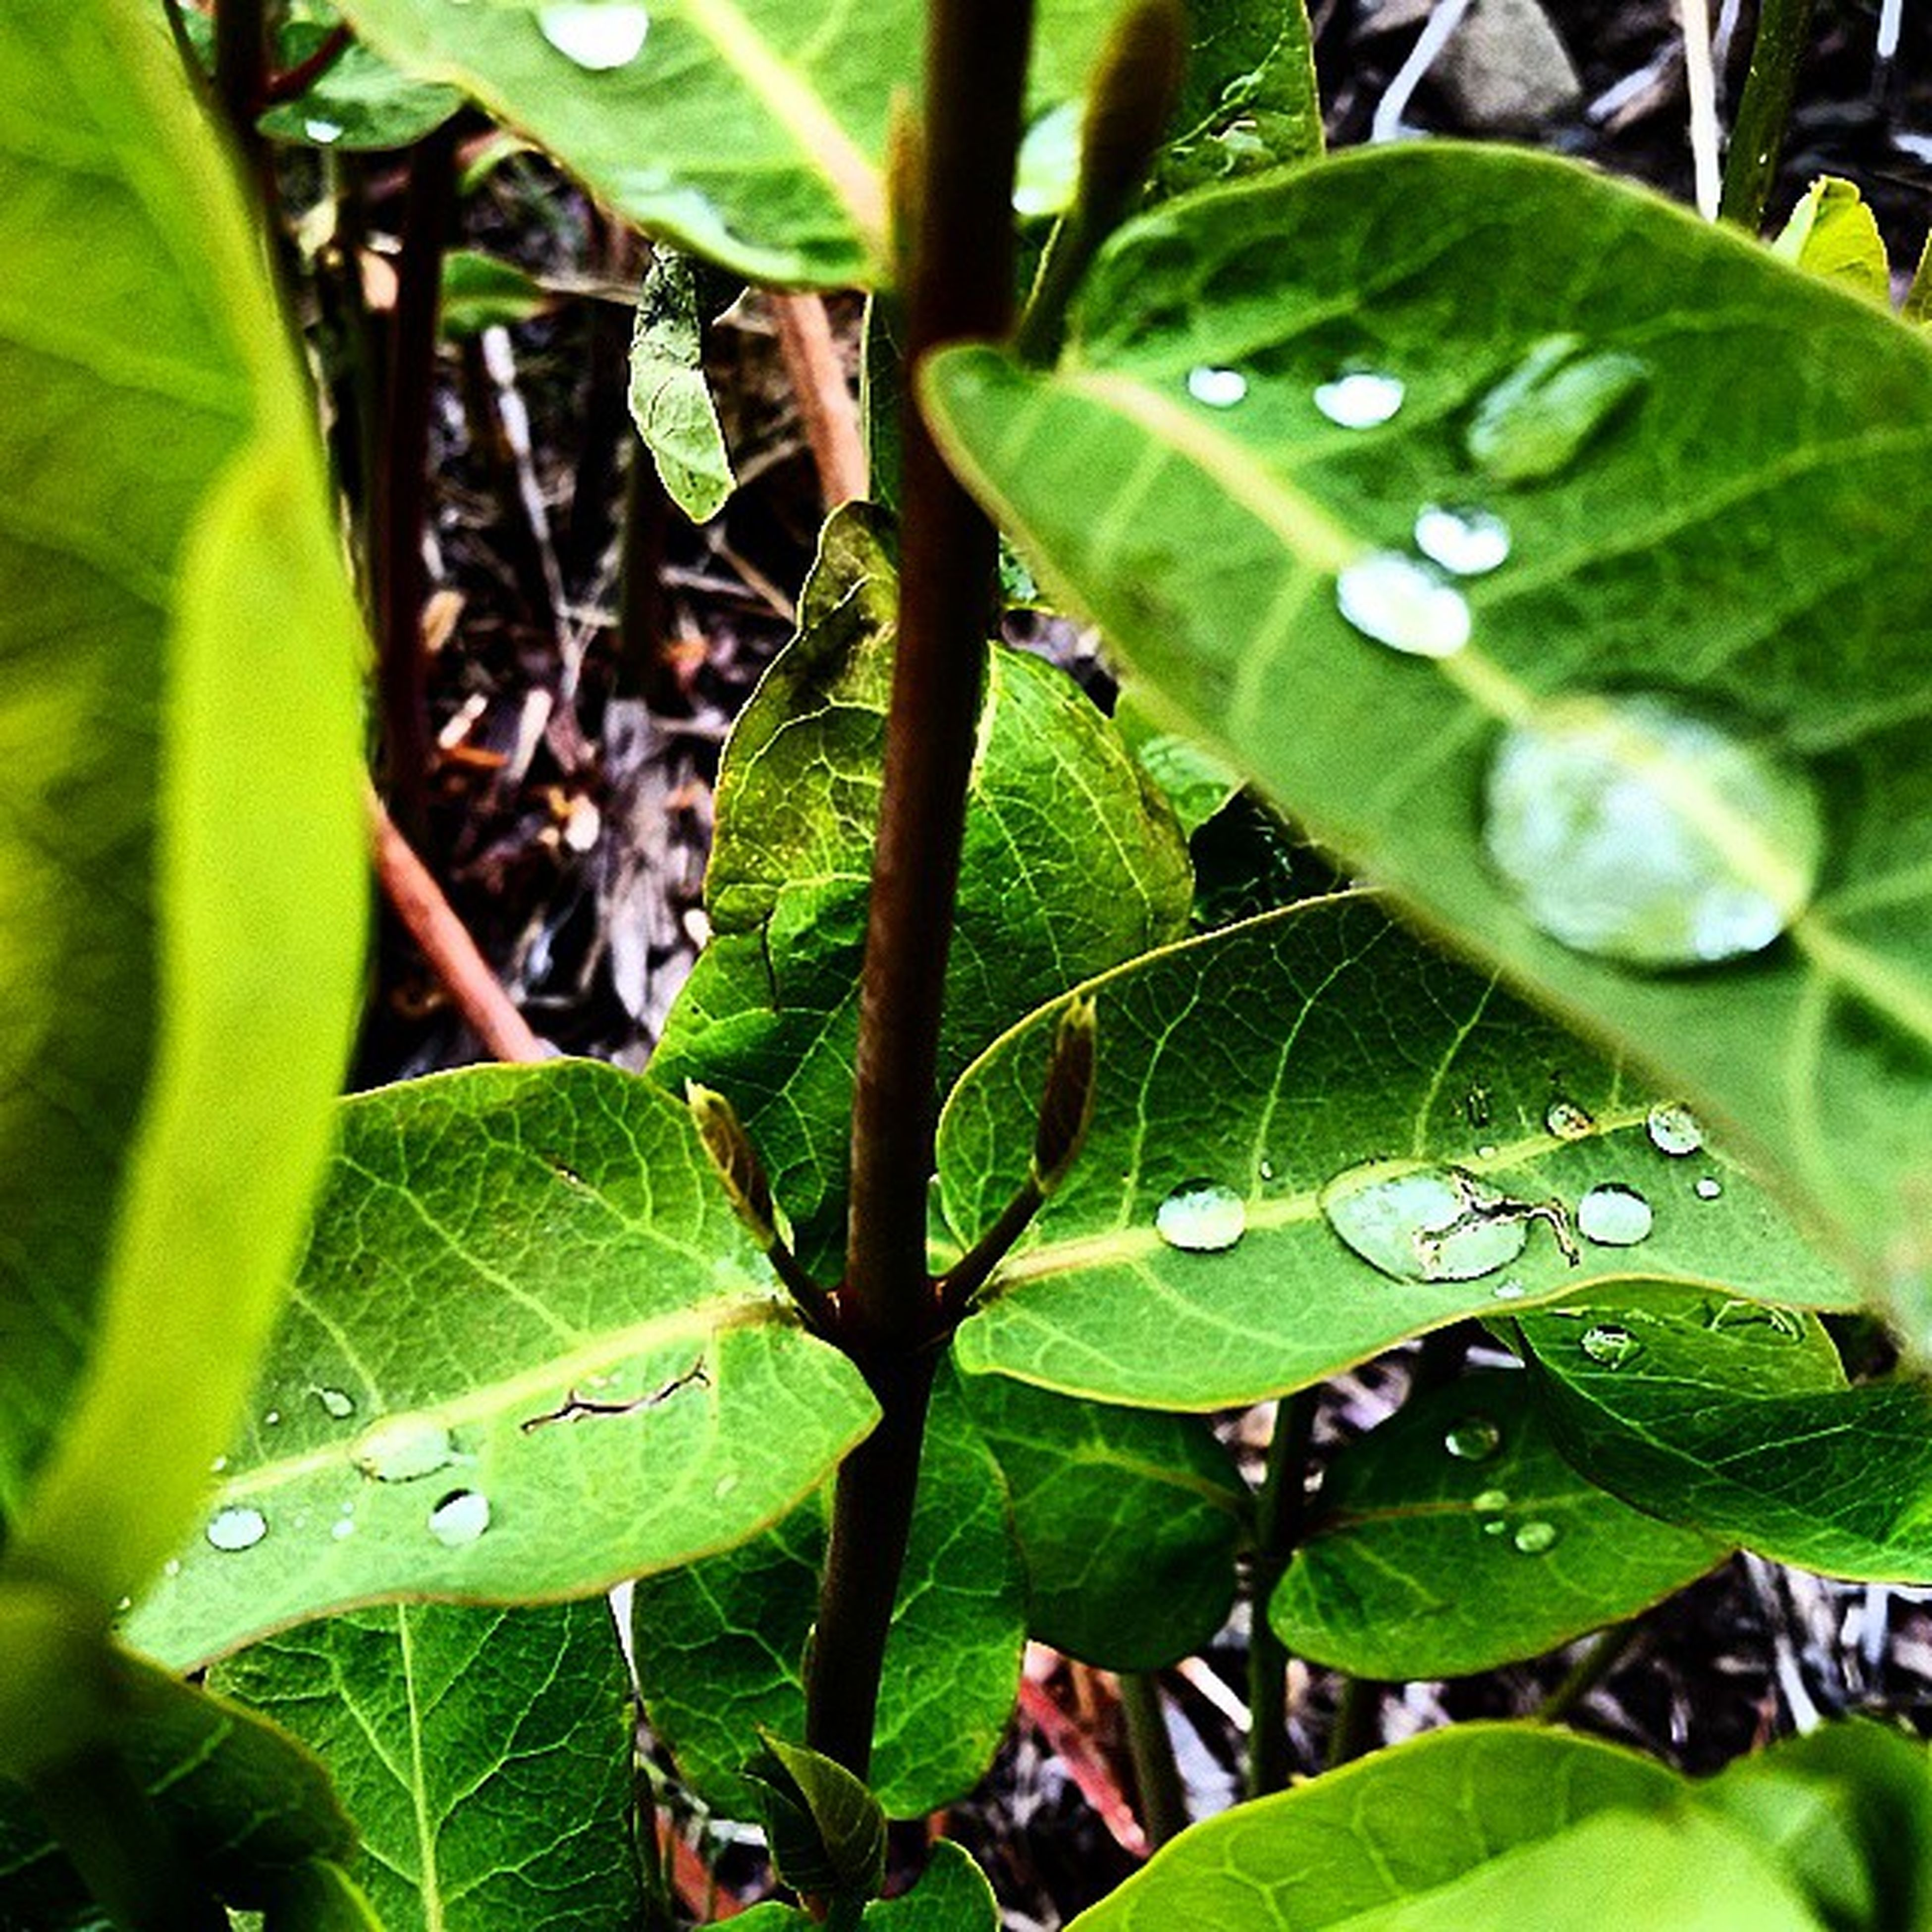 leaf, green color, growth, plant, leaf vein, close-up, nature, water, leaves, drop, freshness, high angle view, wet, beauty in nature, green, day, focus on foreground, outdoors, selective focus, no people